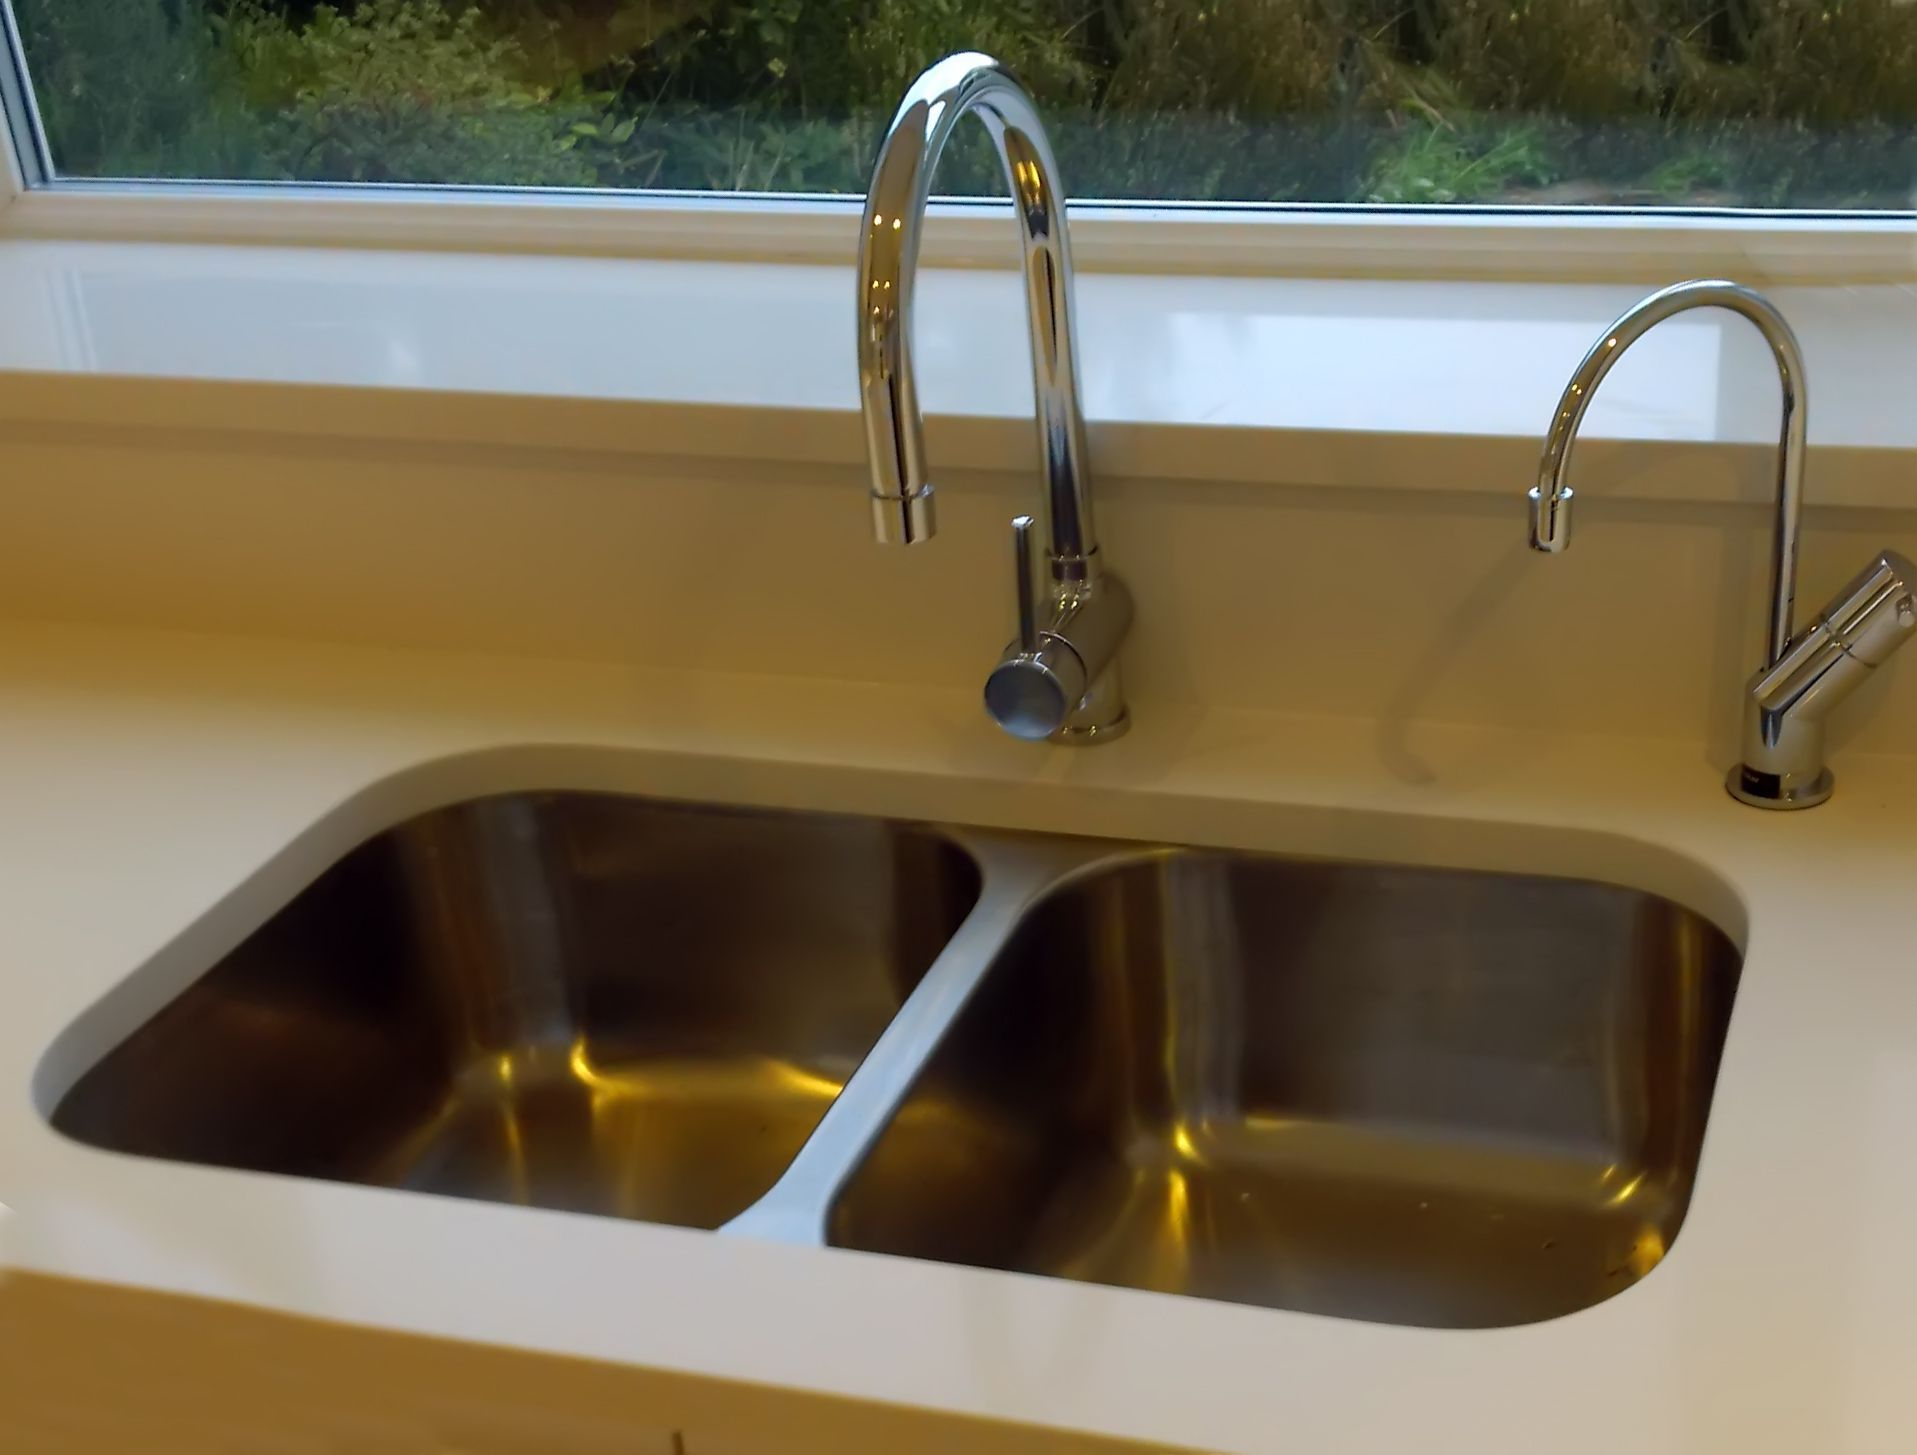 This Customer Has Set The Bluci Rubus 3535u Into A Corian Type Worktop A Double Bowl Stainless Steel Undermounted K Countertop Water Filter Sink Kitchen Sink